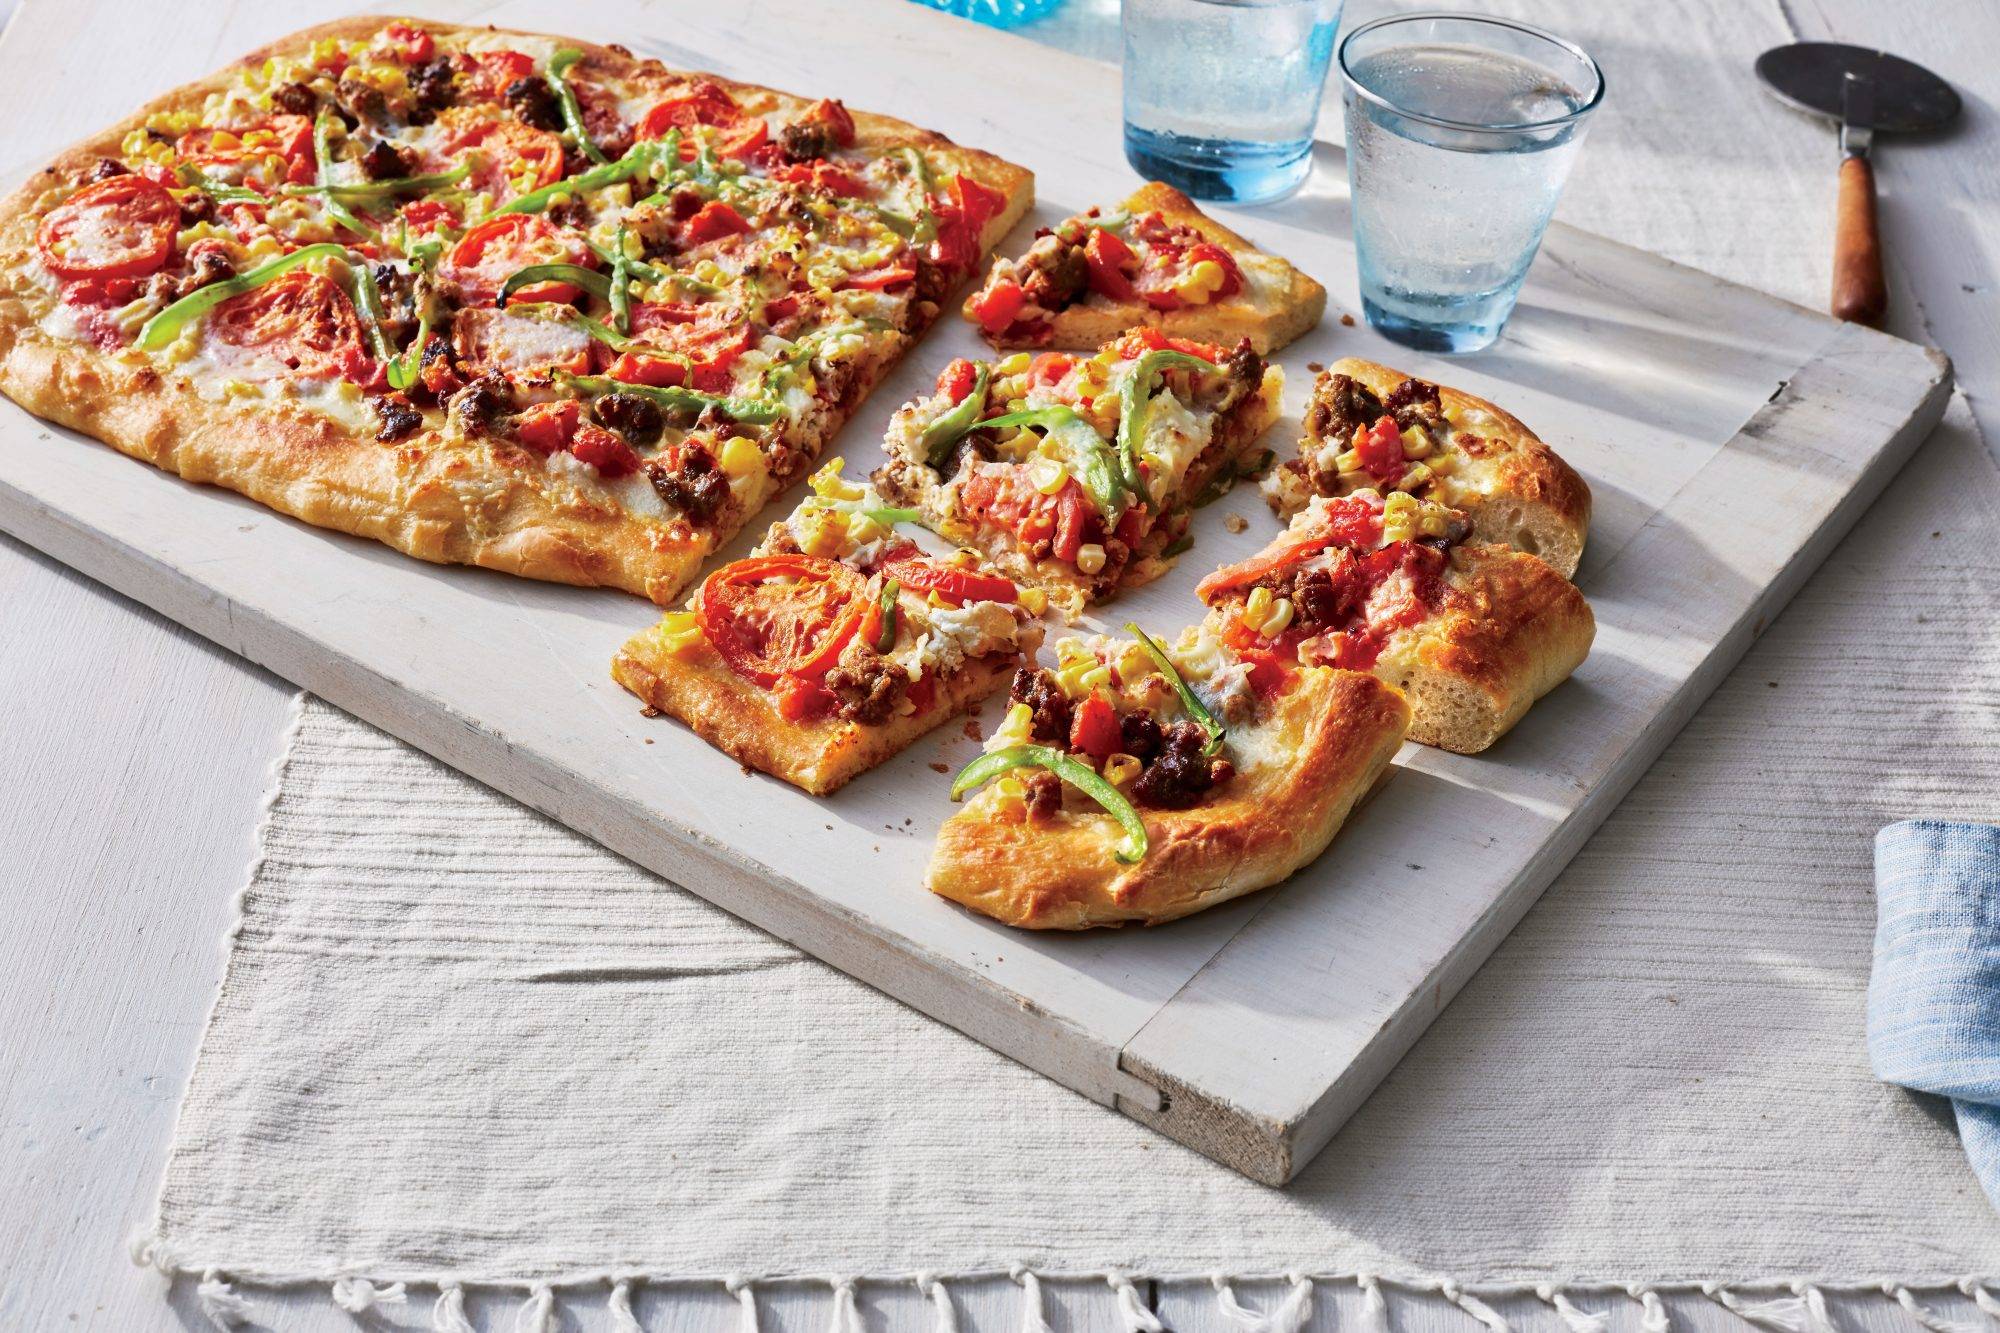 Sheet Pan Pizza with Corn, Tomatoes, and Sausage Recipe Adam Dolge